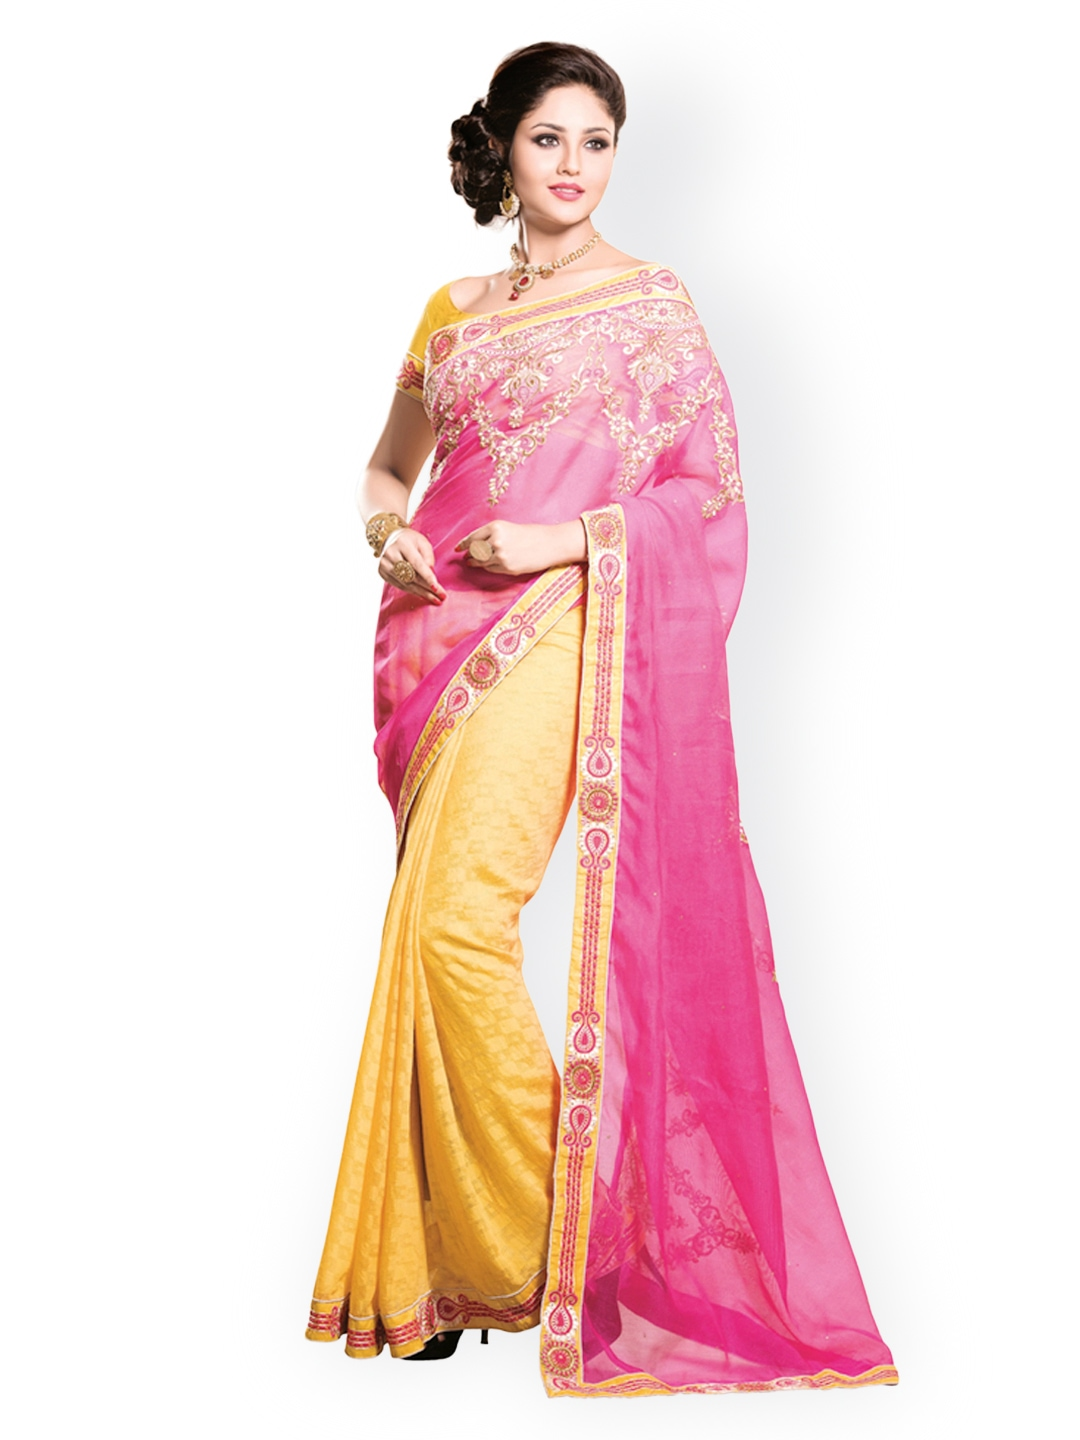 Myntra Kashish Lifestyle Pink Yellow Embroidered Georgette Fashion Saree 813979 Buy Myntra